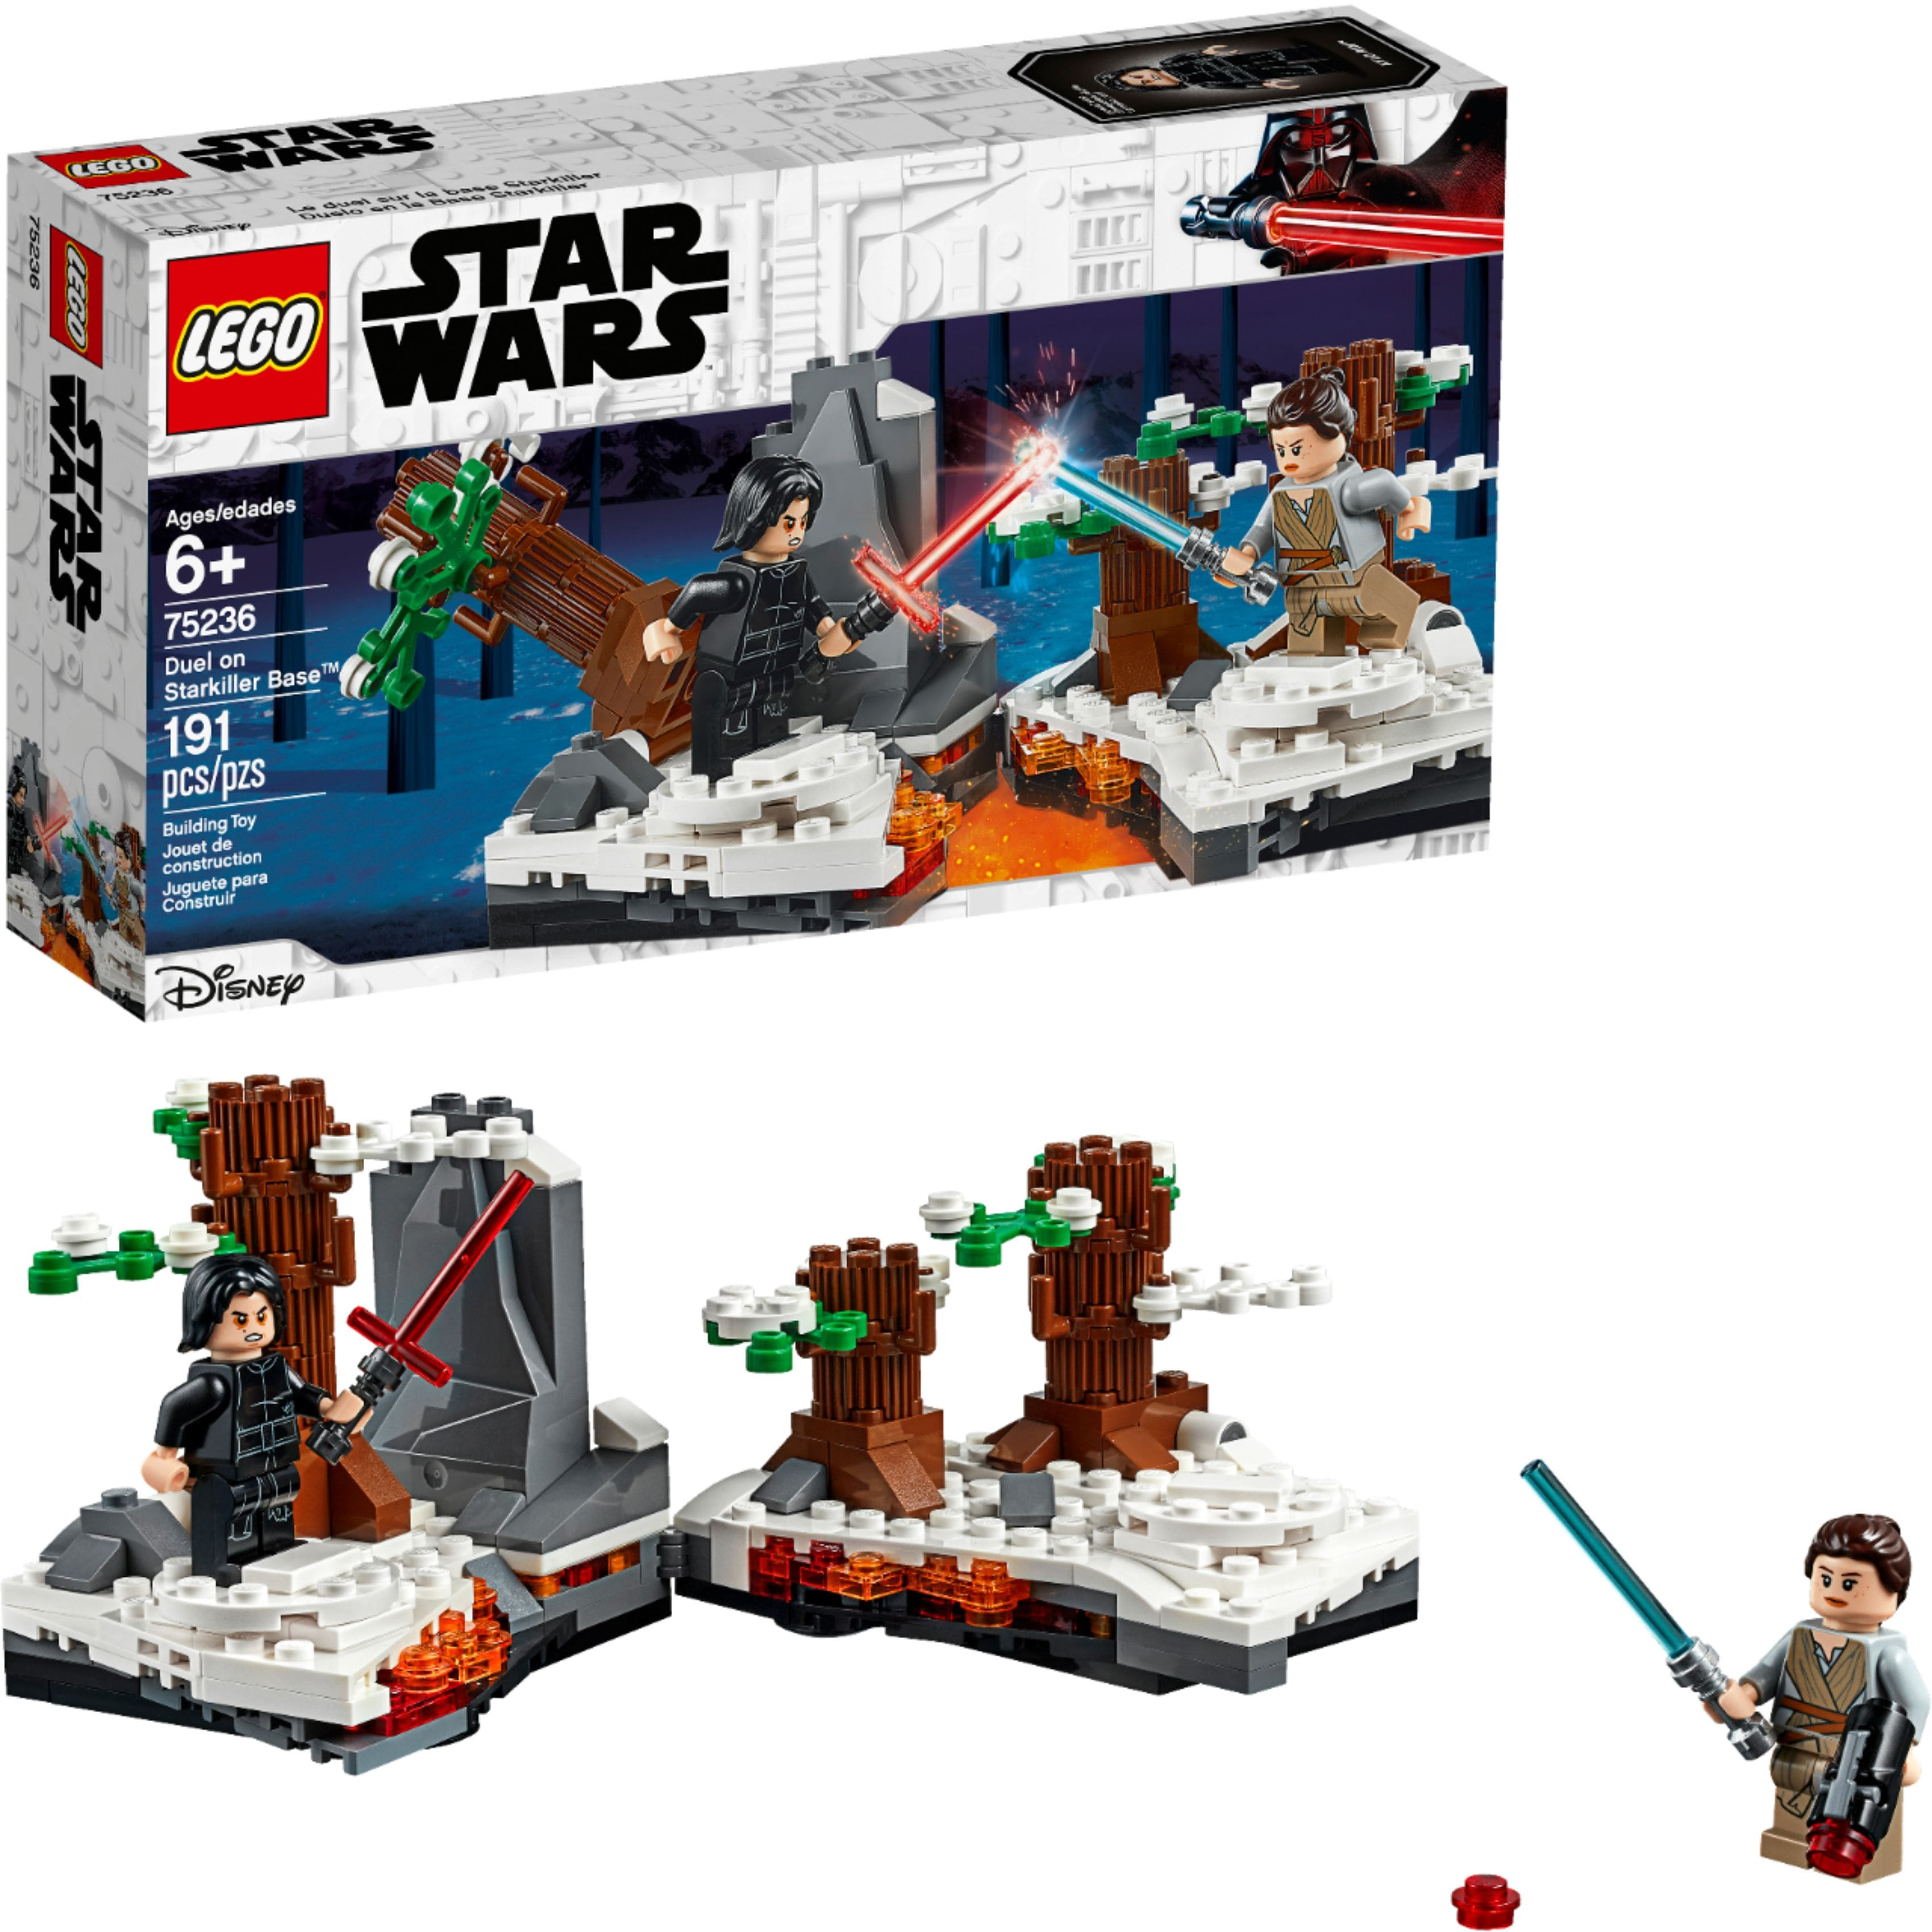 Lego: $10 off $50+ on select LEGO Star Wars, Ninjago, MineCraft, Architecture & More Sets + Free shipping w/ Prime